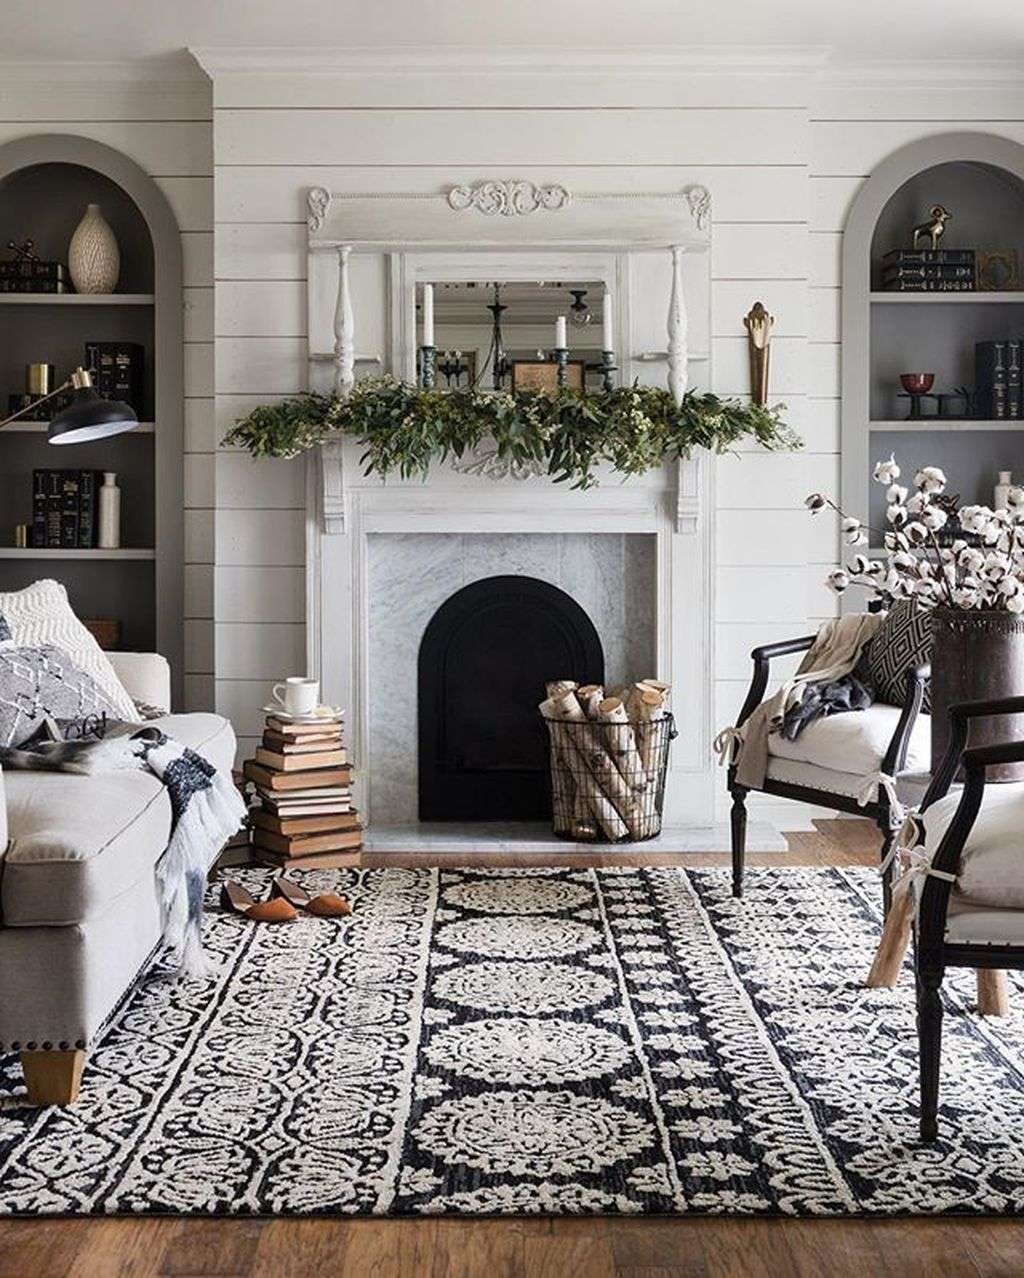 Furniture Modern Howchow Furniture Design For Cozy Home: 46 Cozy Living Room Decoration Ideas For This Winter